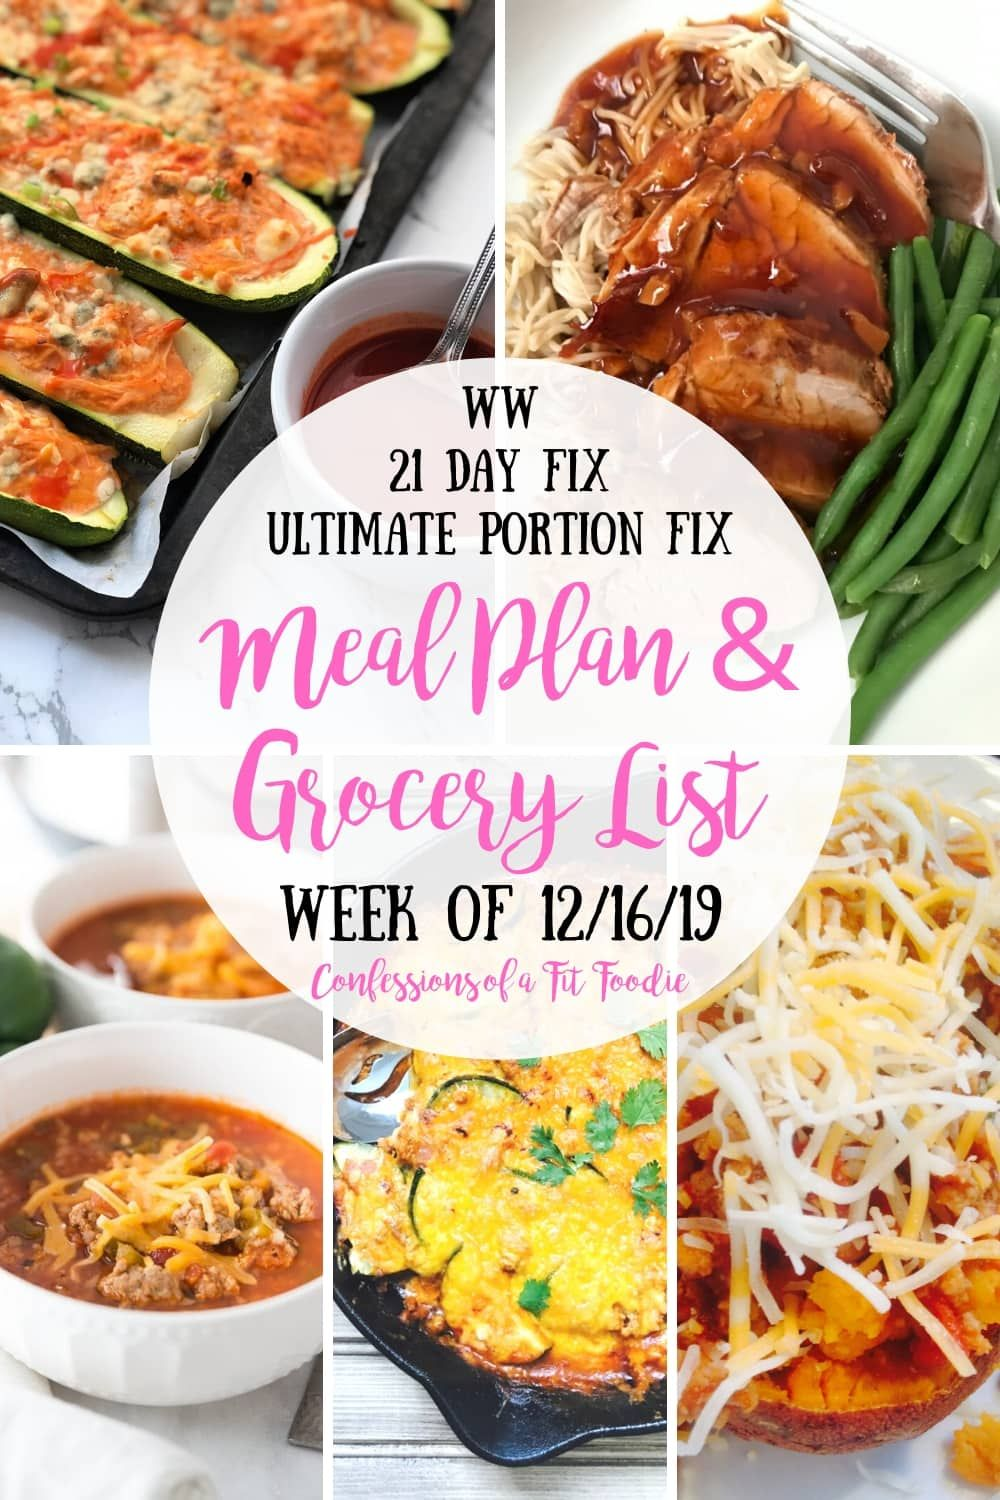 This Week S 21 Day Fix Meal Plan Keeps Things Simple And Delicious